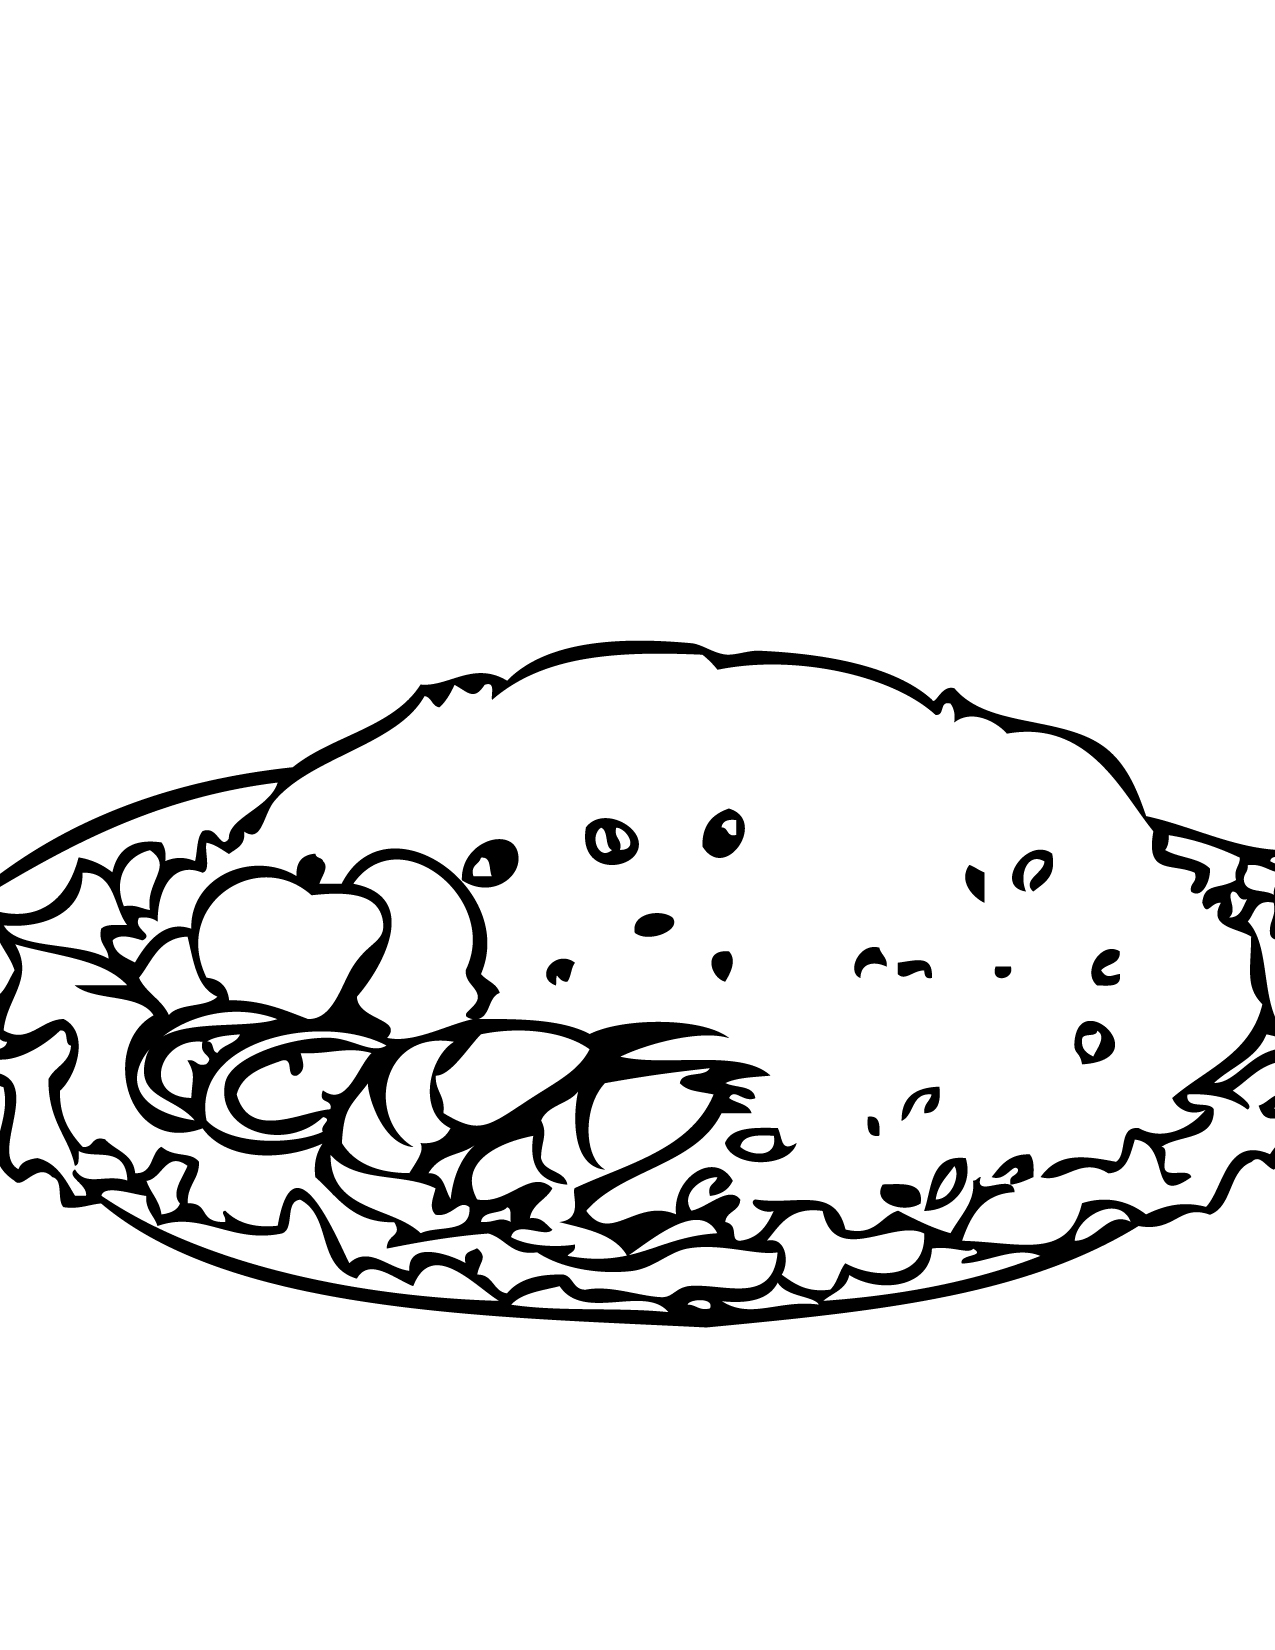 1275x1650 Fried Rice Coloring Page